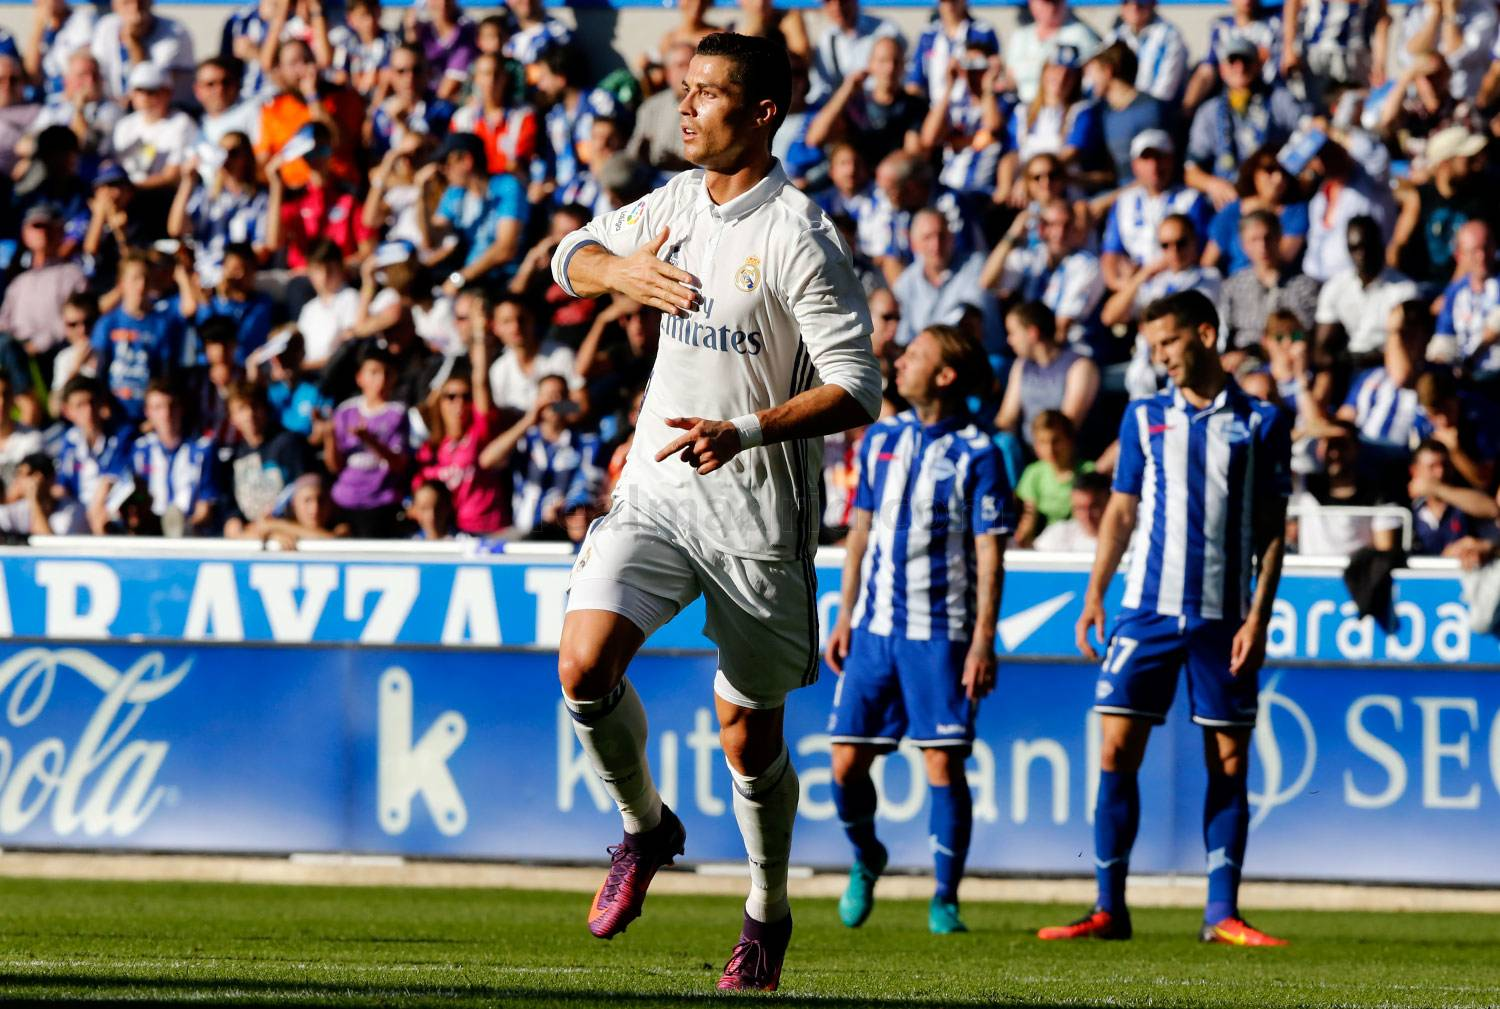 Alavés - Real Madrid